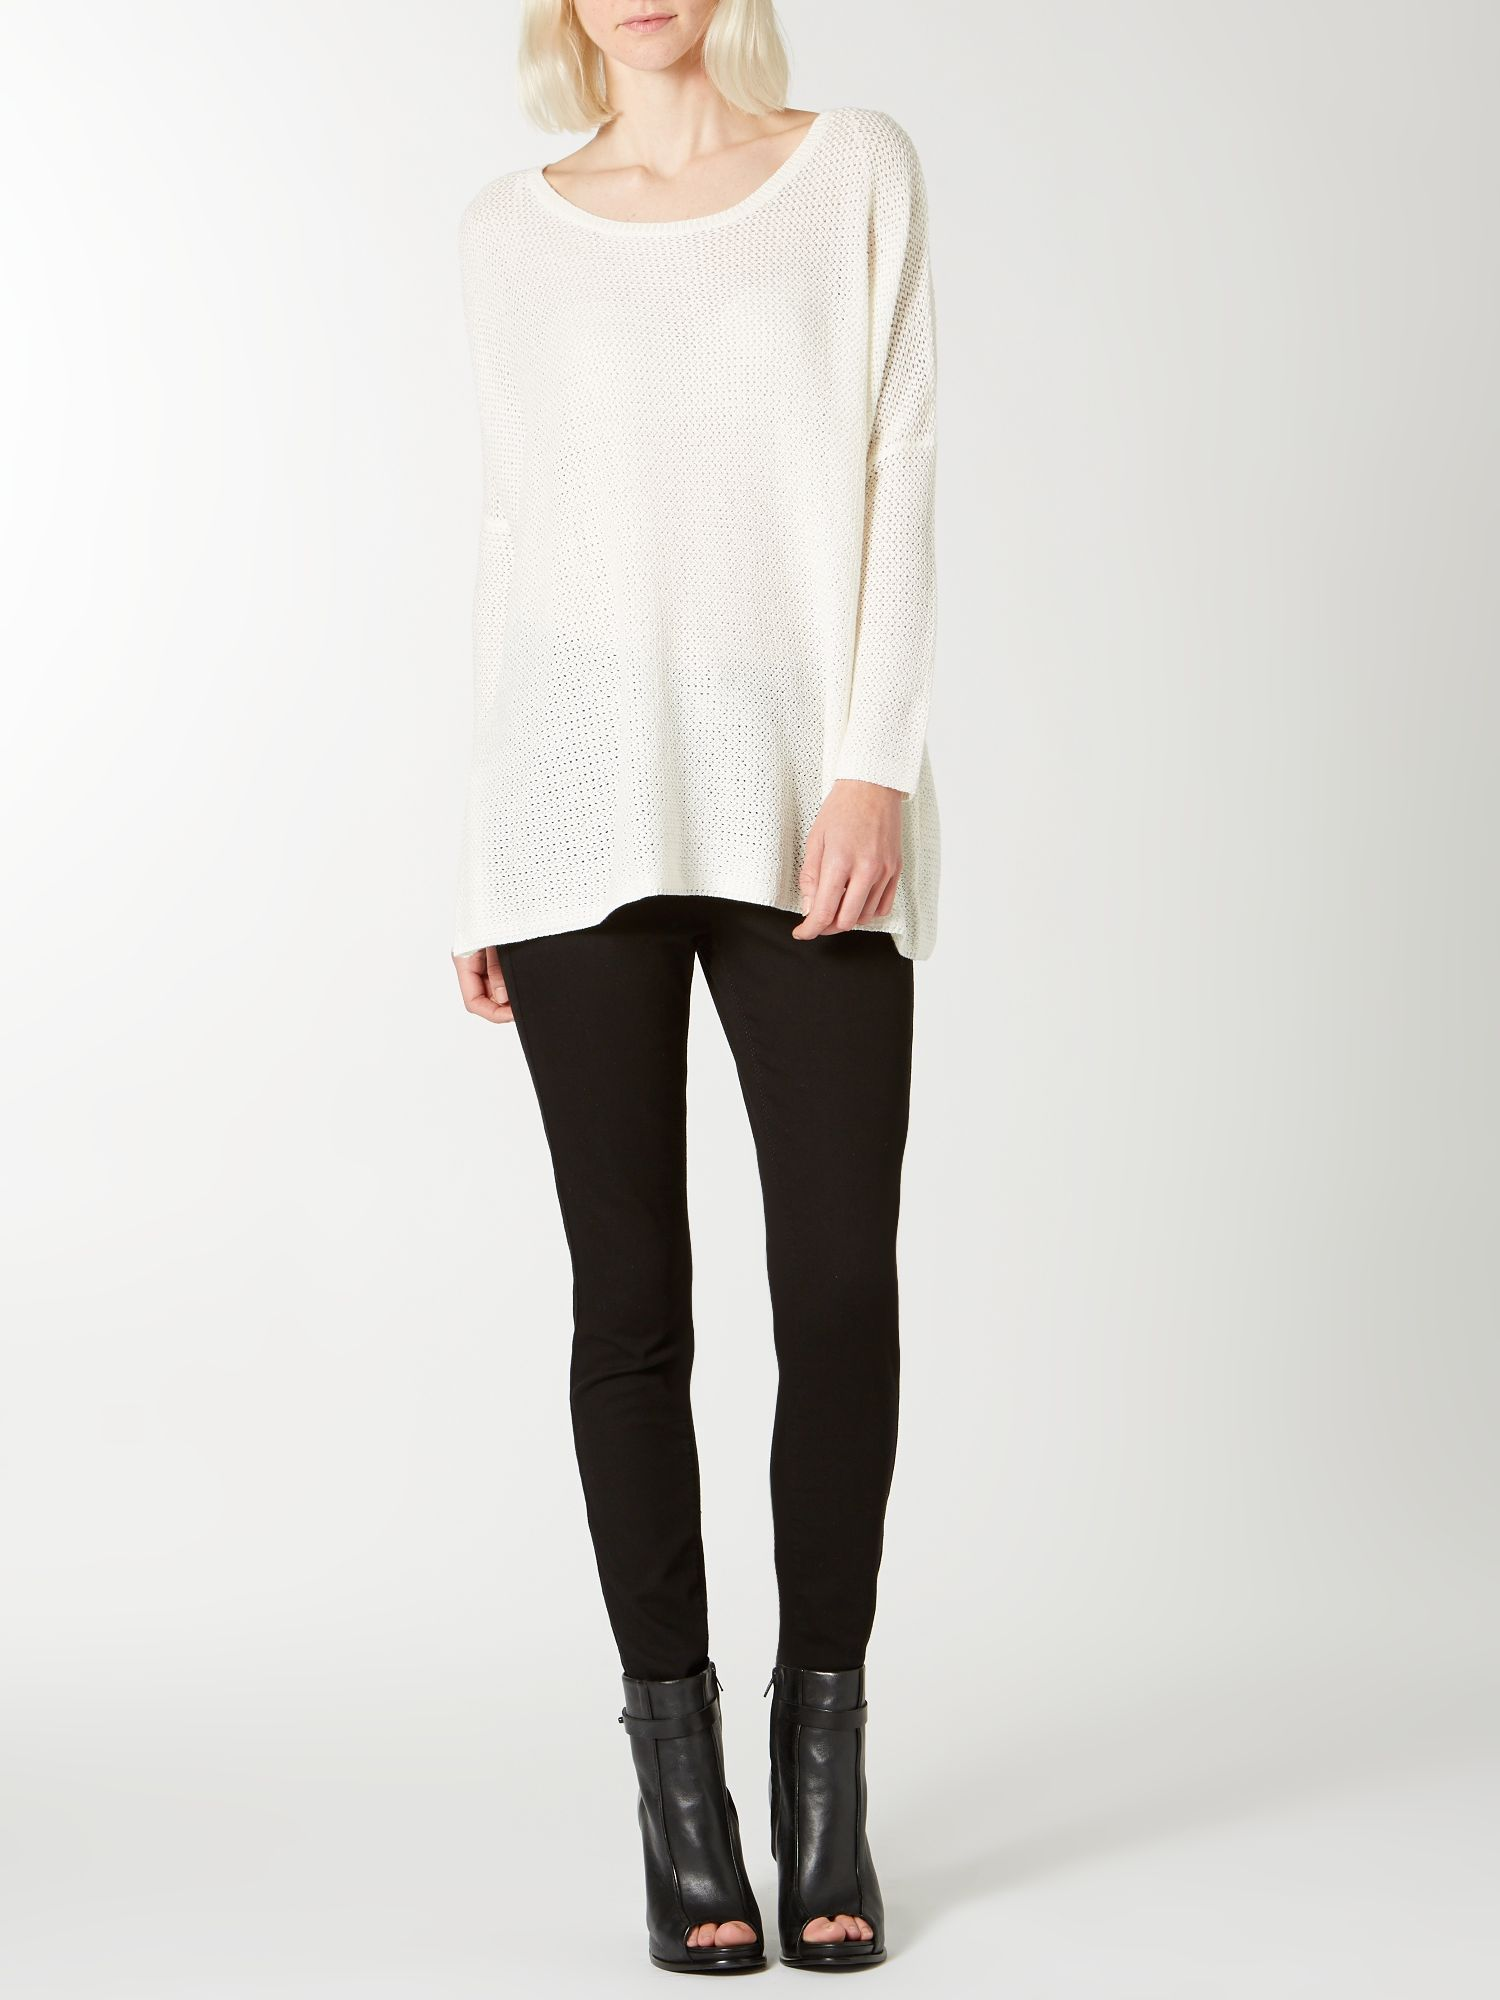 Textured oversized knit jumper